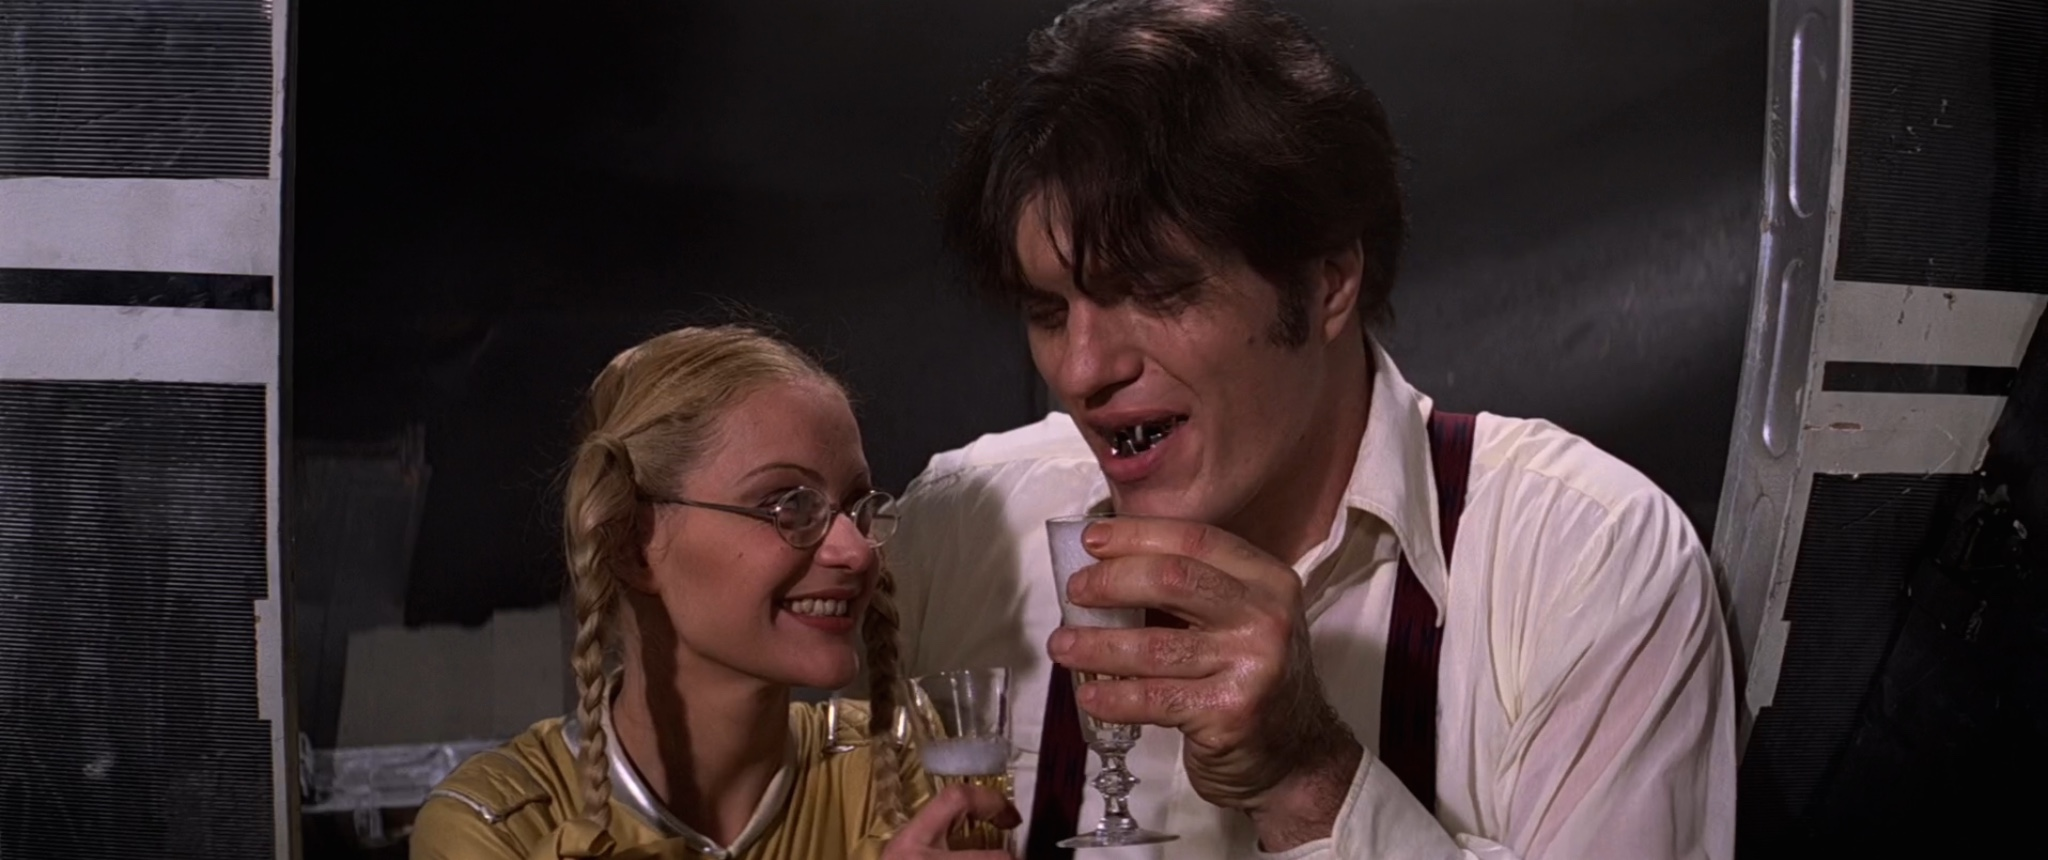 Richard Kiel and Blanche Ravalec in Moonraker (1979)